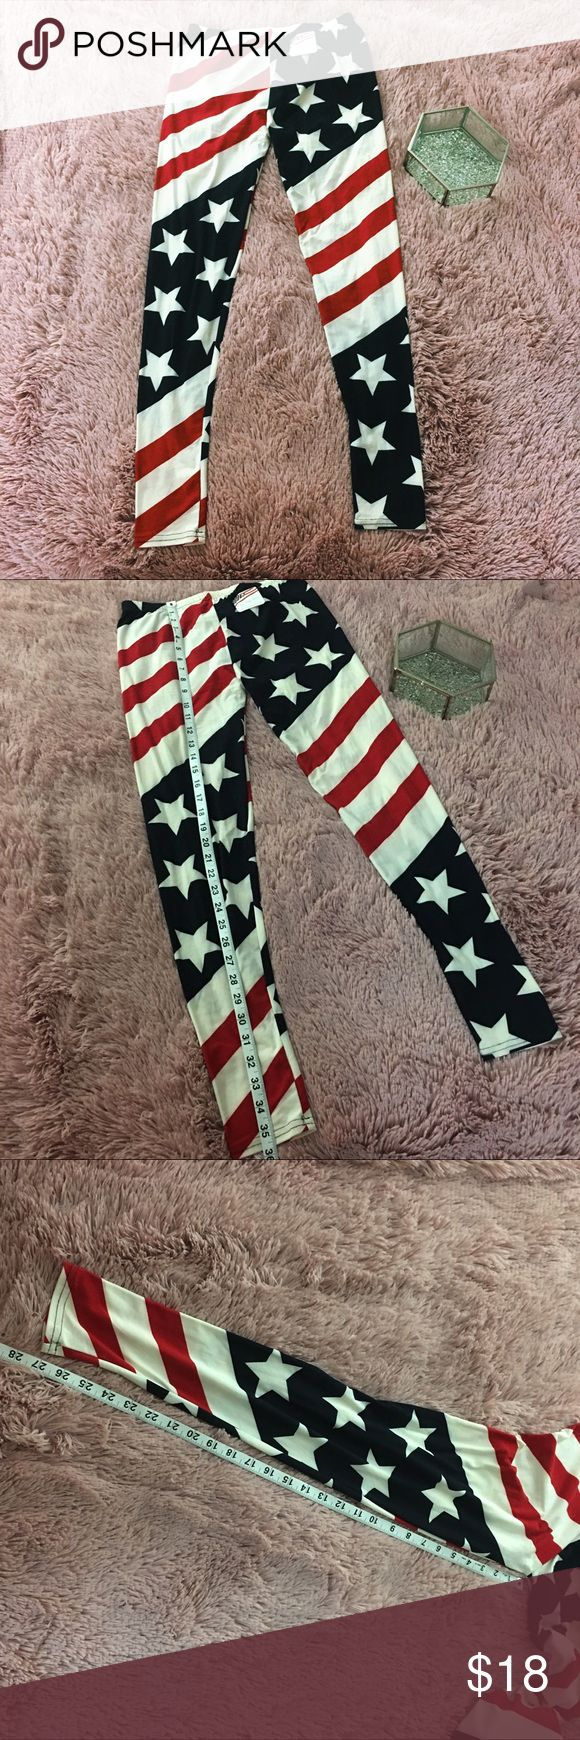 American Flag Print Leggings Patriotic USA SOFT Brand: the flag shop  Color(s): off white, red, blue  Size: medium  Zipper: no  Stretch: yes  Fabric content: 95% polyester 5% spandex (SO SOFT) Condition: new with tags  Defects: none   💥First photo is edited, may not depict accurate color. Please see additional photos. 💥  Measurements😘 Length: approximately 35.5 inches  Waist: approximately 11.5 inches  Inseam: approximately 27.3 inches   [note to seller: G1] ❤️ The Flag Shop Pants…